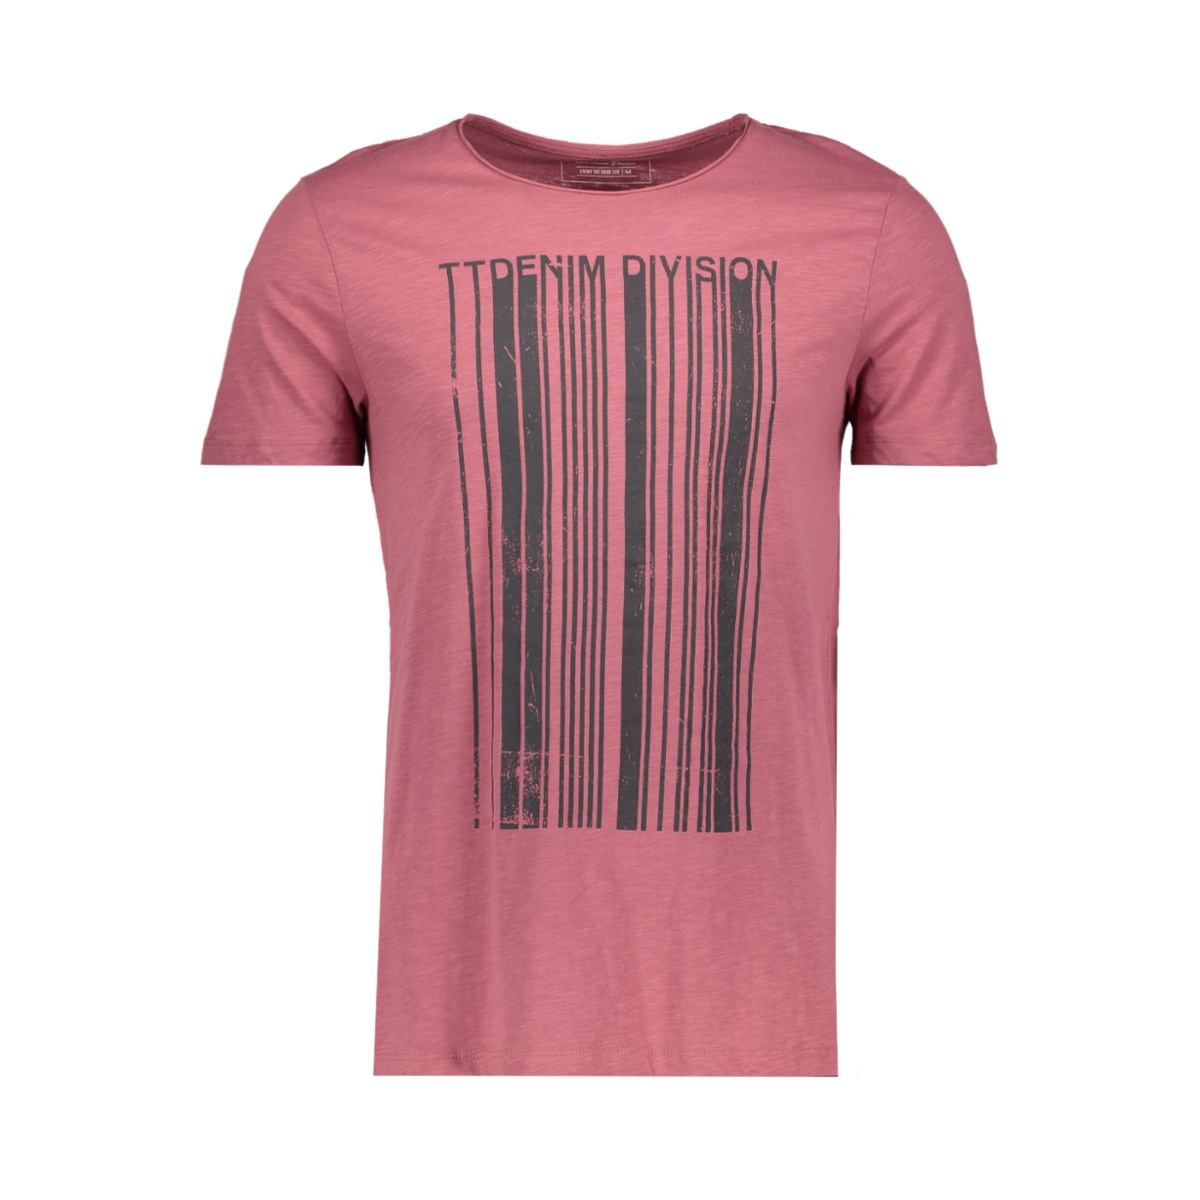 Tom tailor t shirt 4685 for Tailored t shirts online